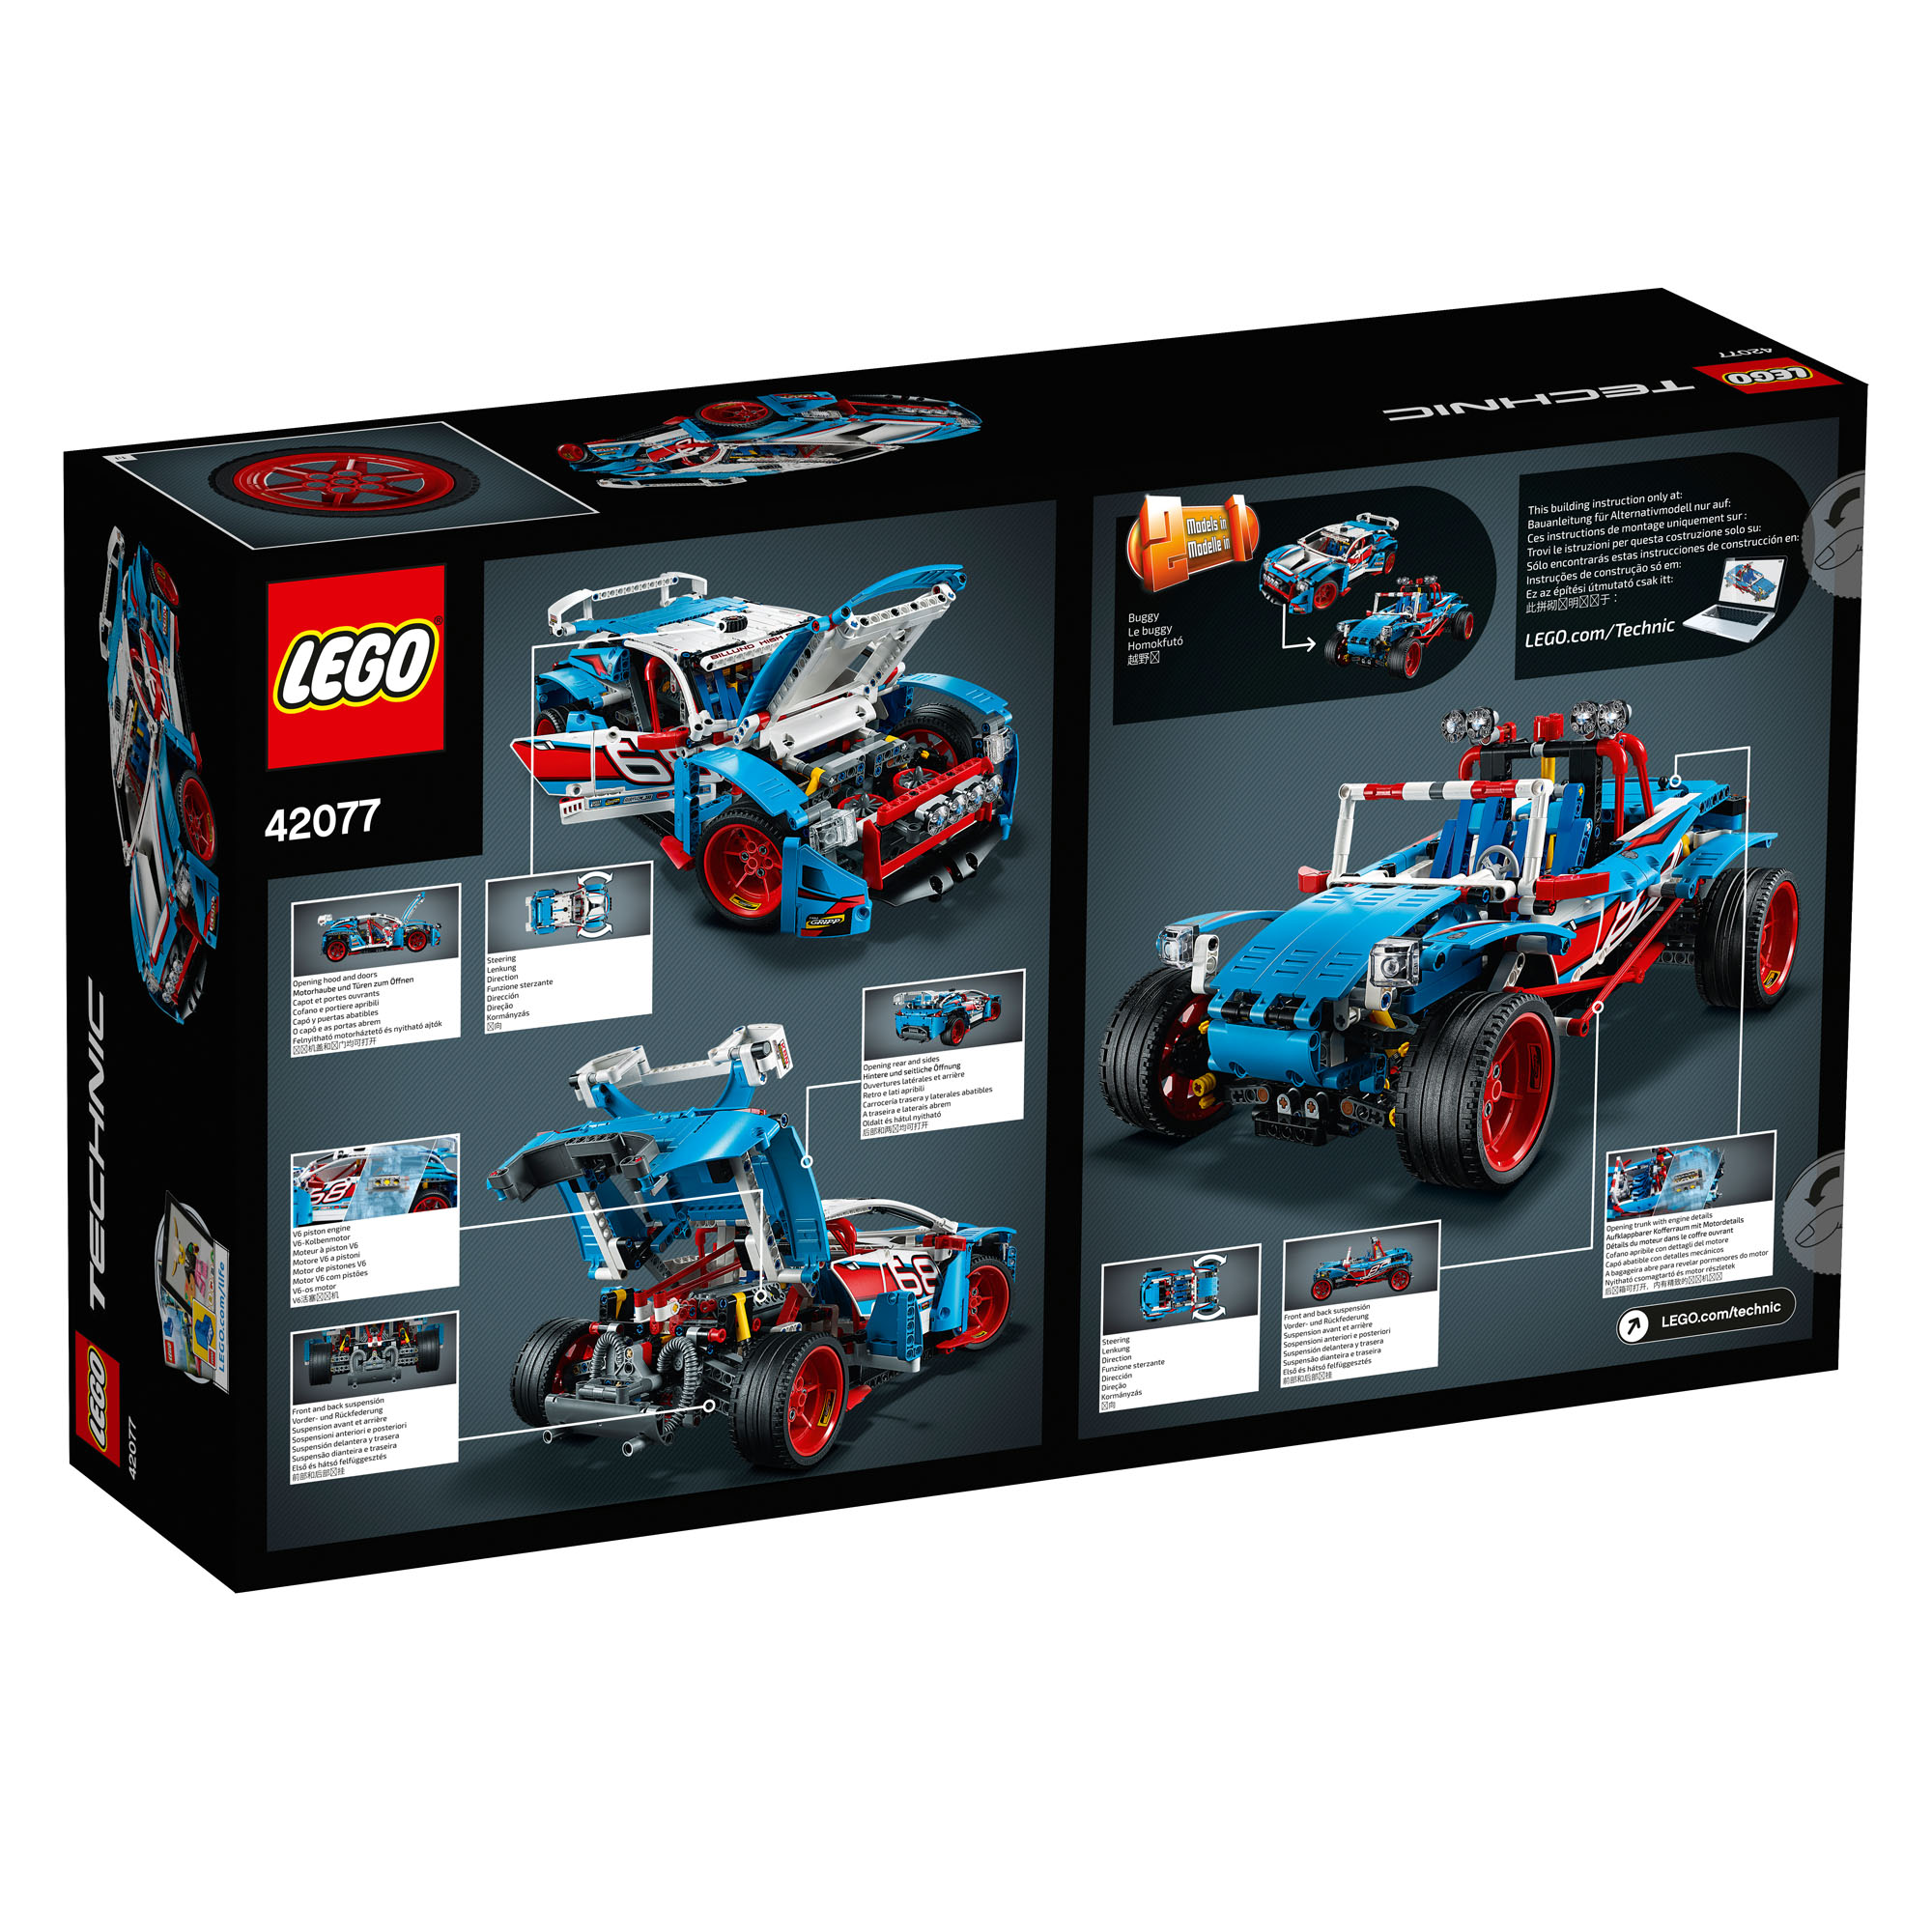 42077 lego technic rally car 2 in 1 set 1005 pieces age 10. Black Bedroom Furniture Sets. Home Design Ideas